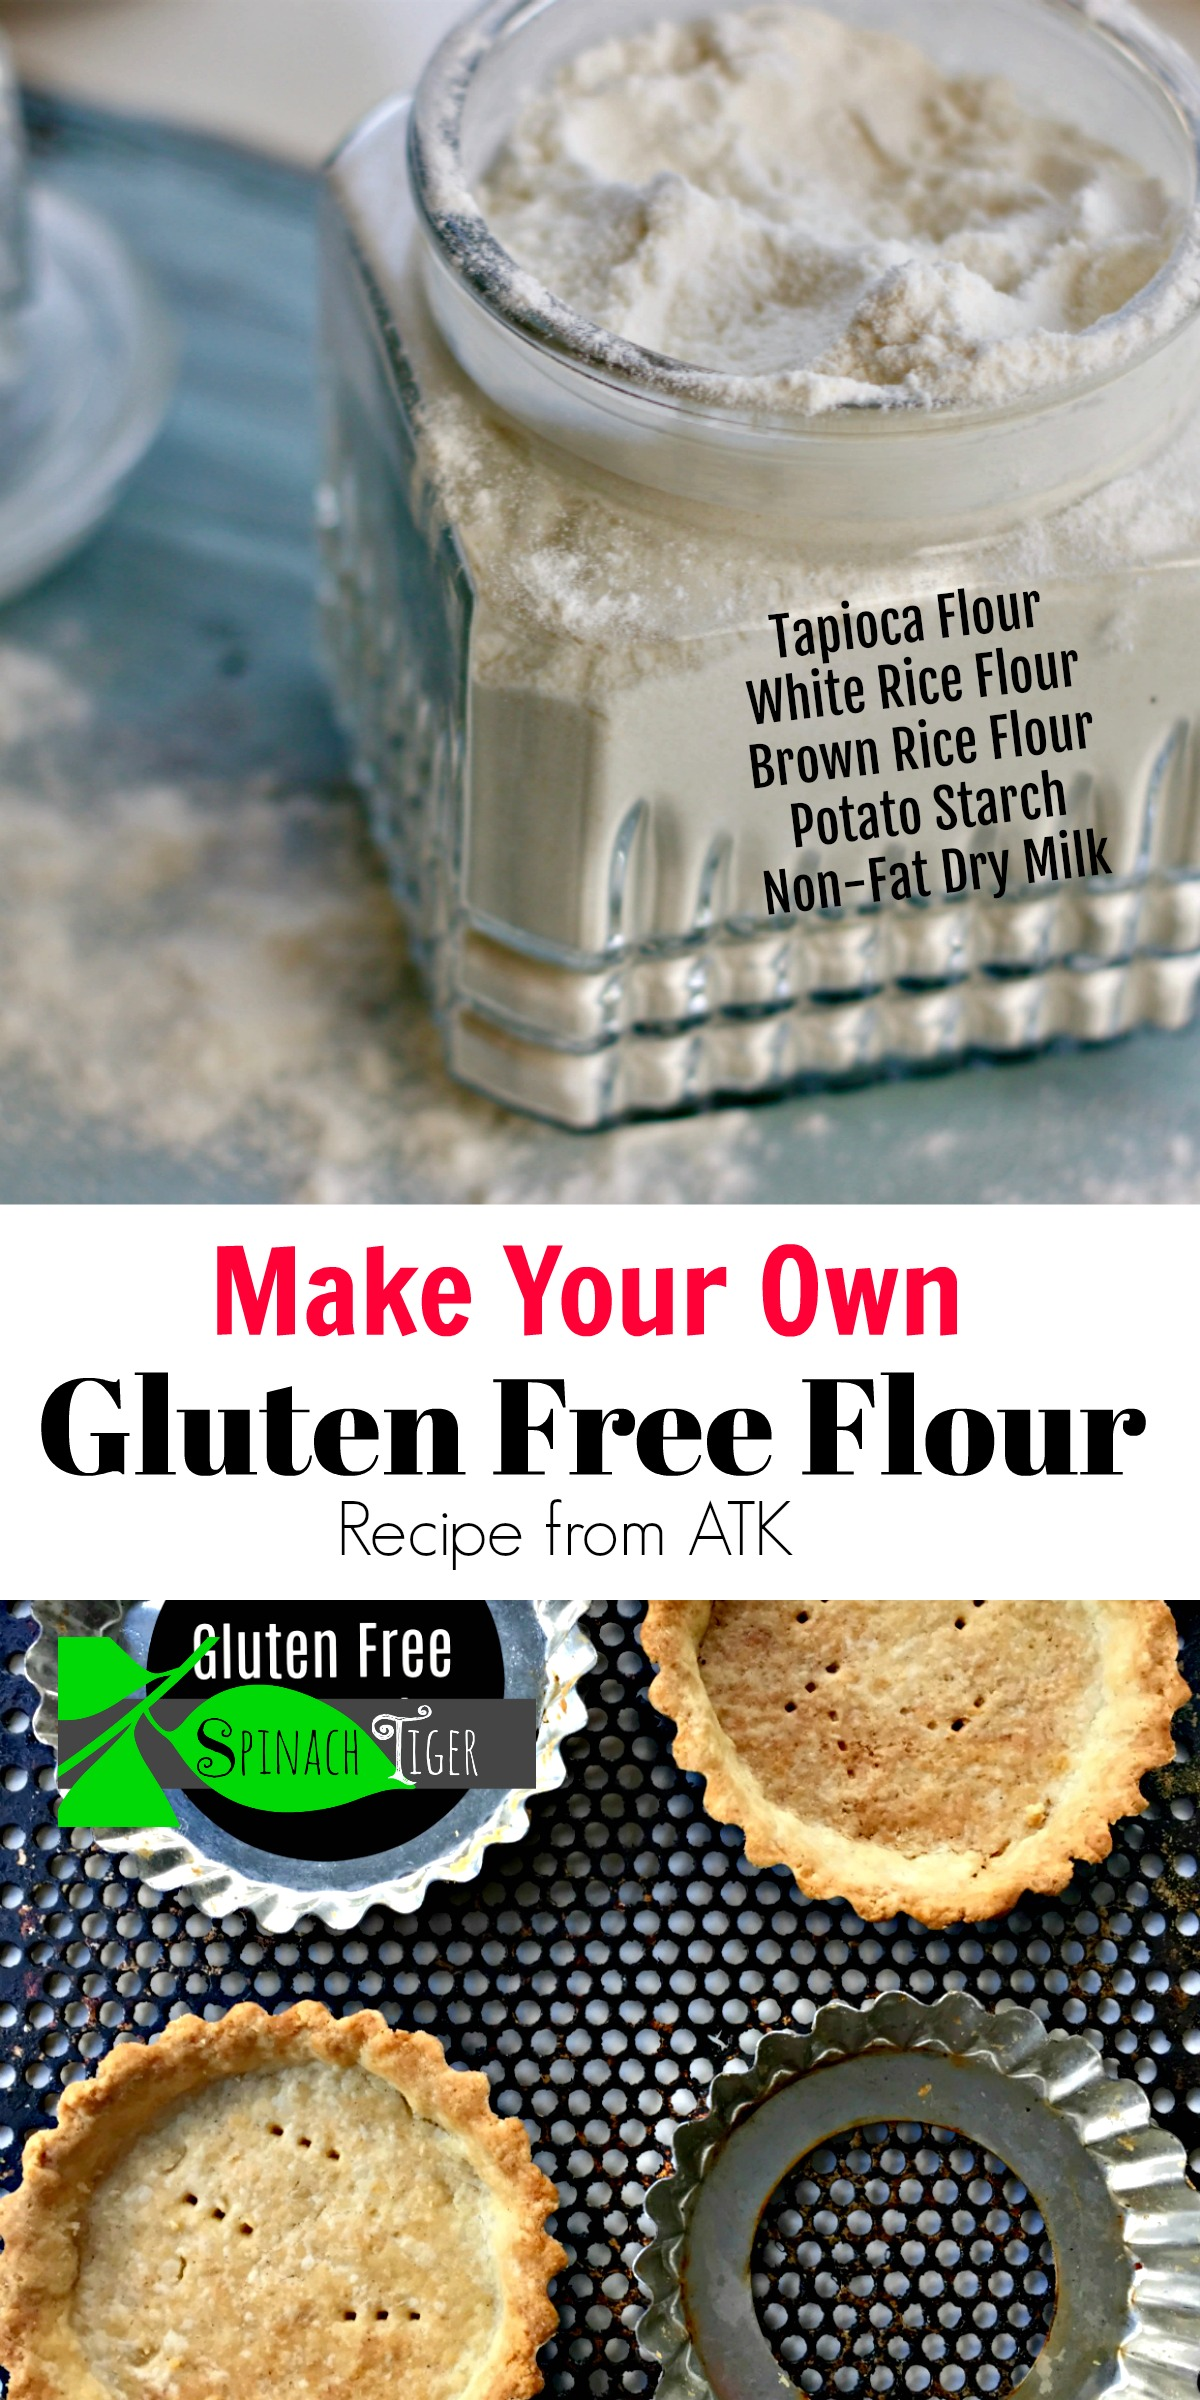 How to Make Gluten Free Flour from Scratch by Spinach Tiger